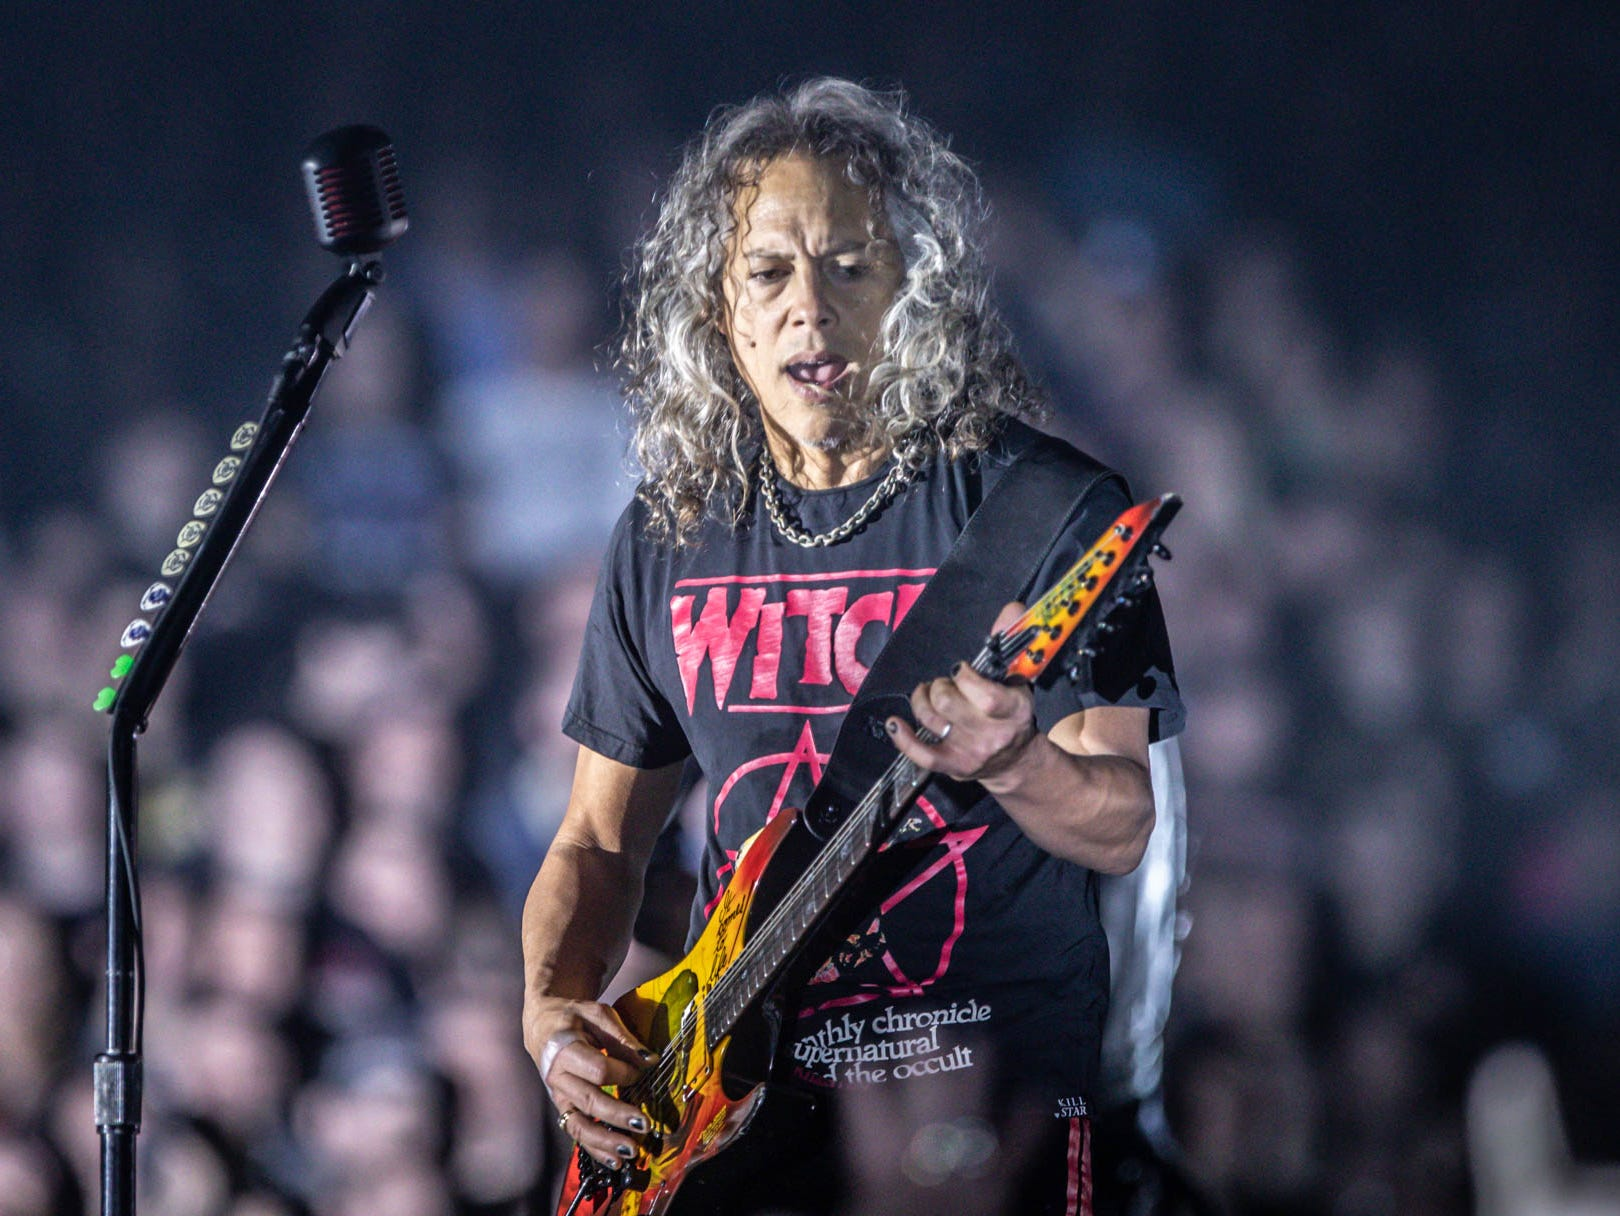 Metallica member Kirk Hammett performs as the band brings their WorldWired Tour to Bankers Life Fieldhouse on Monday, March 11, 2019.